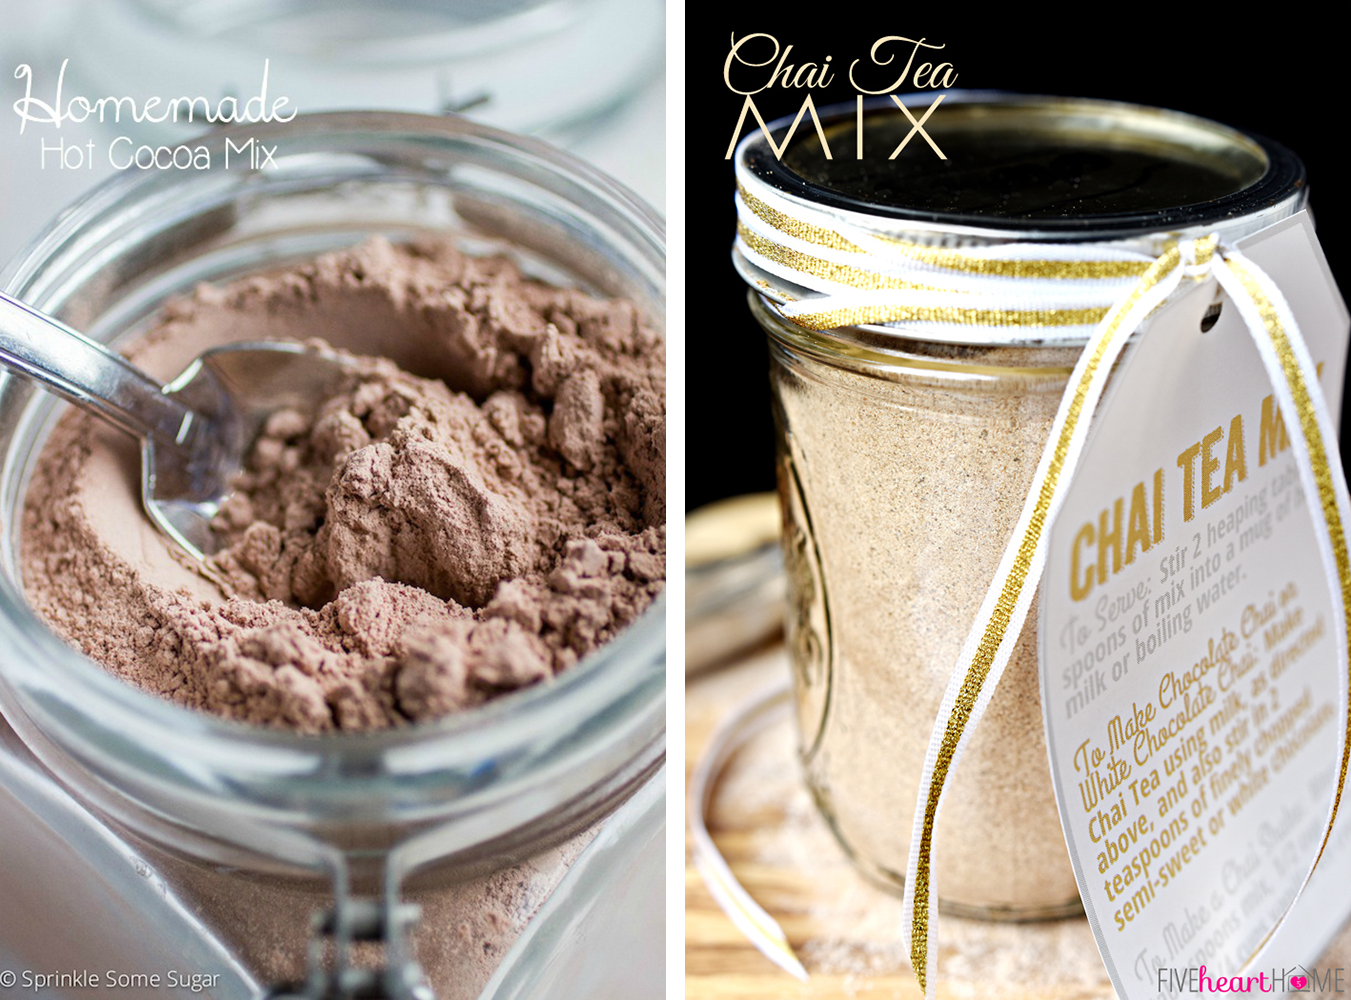 Last Minute DIY Valentine's Day Gift Ideas - Hot Chocolate and Chai Tea Mixes via Sprinkle Some Sugar and Five Heart Home | http://www.roseclearfield.com